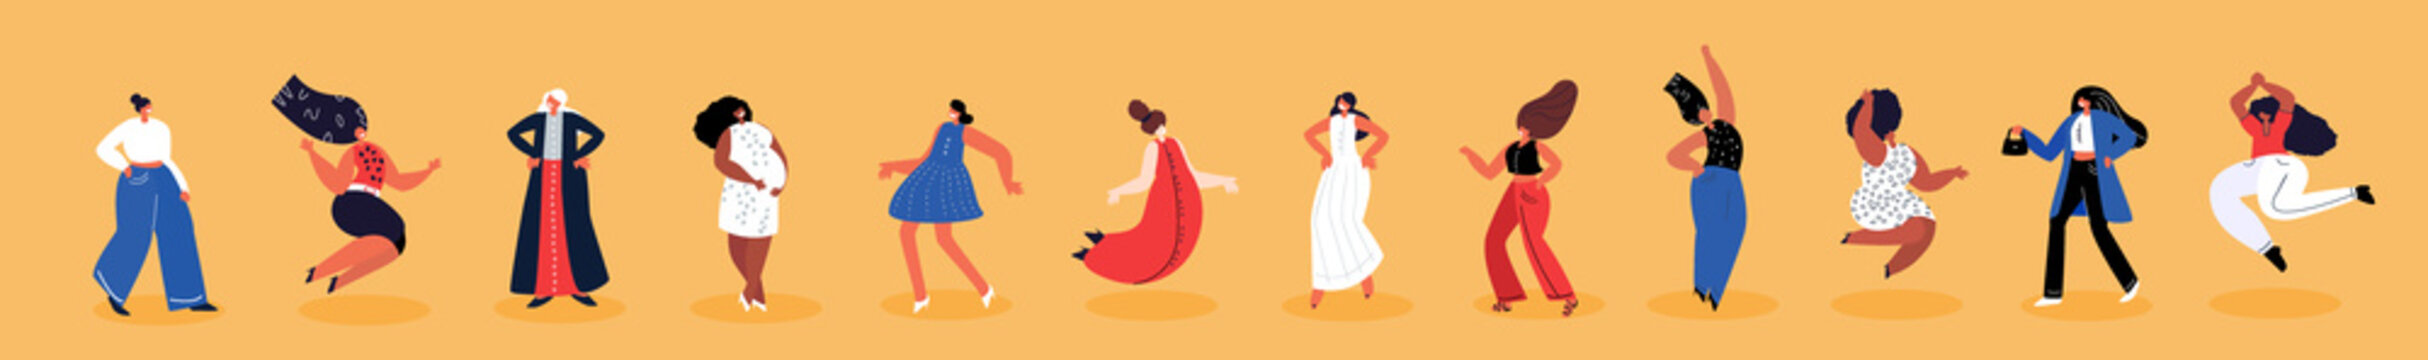 Happy International Woman Day.Feminism concept.Bright Beautiful Different Dancing Girls Holding Hands.Party,Eight of March Celebration. Free Confident Women.Female Empowerment.Vector Flat Illustration